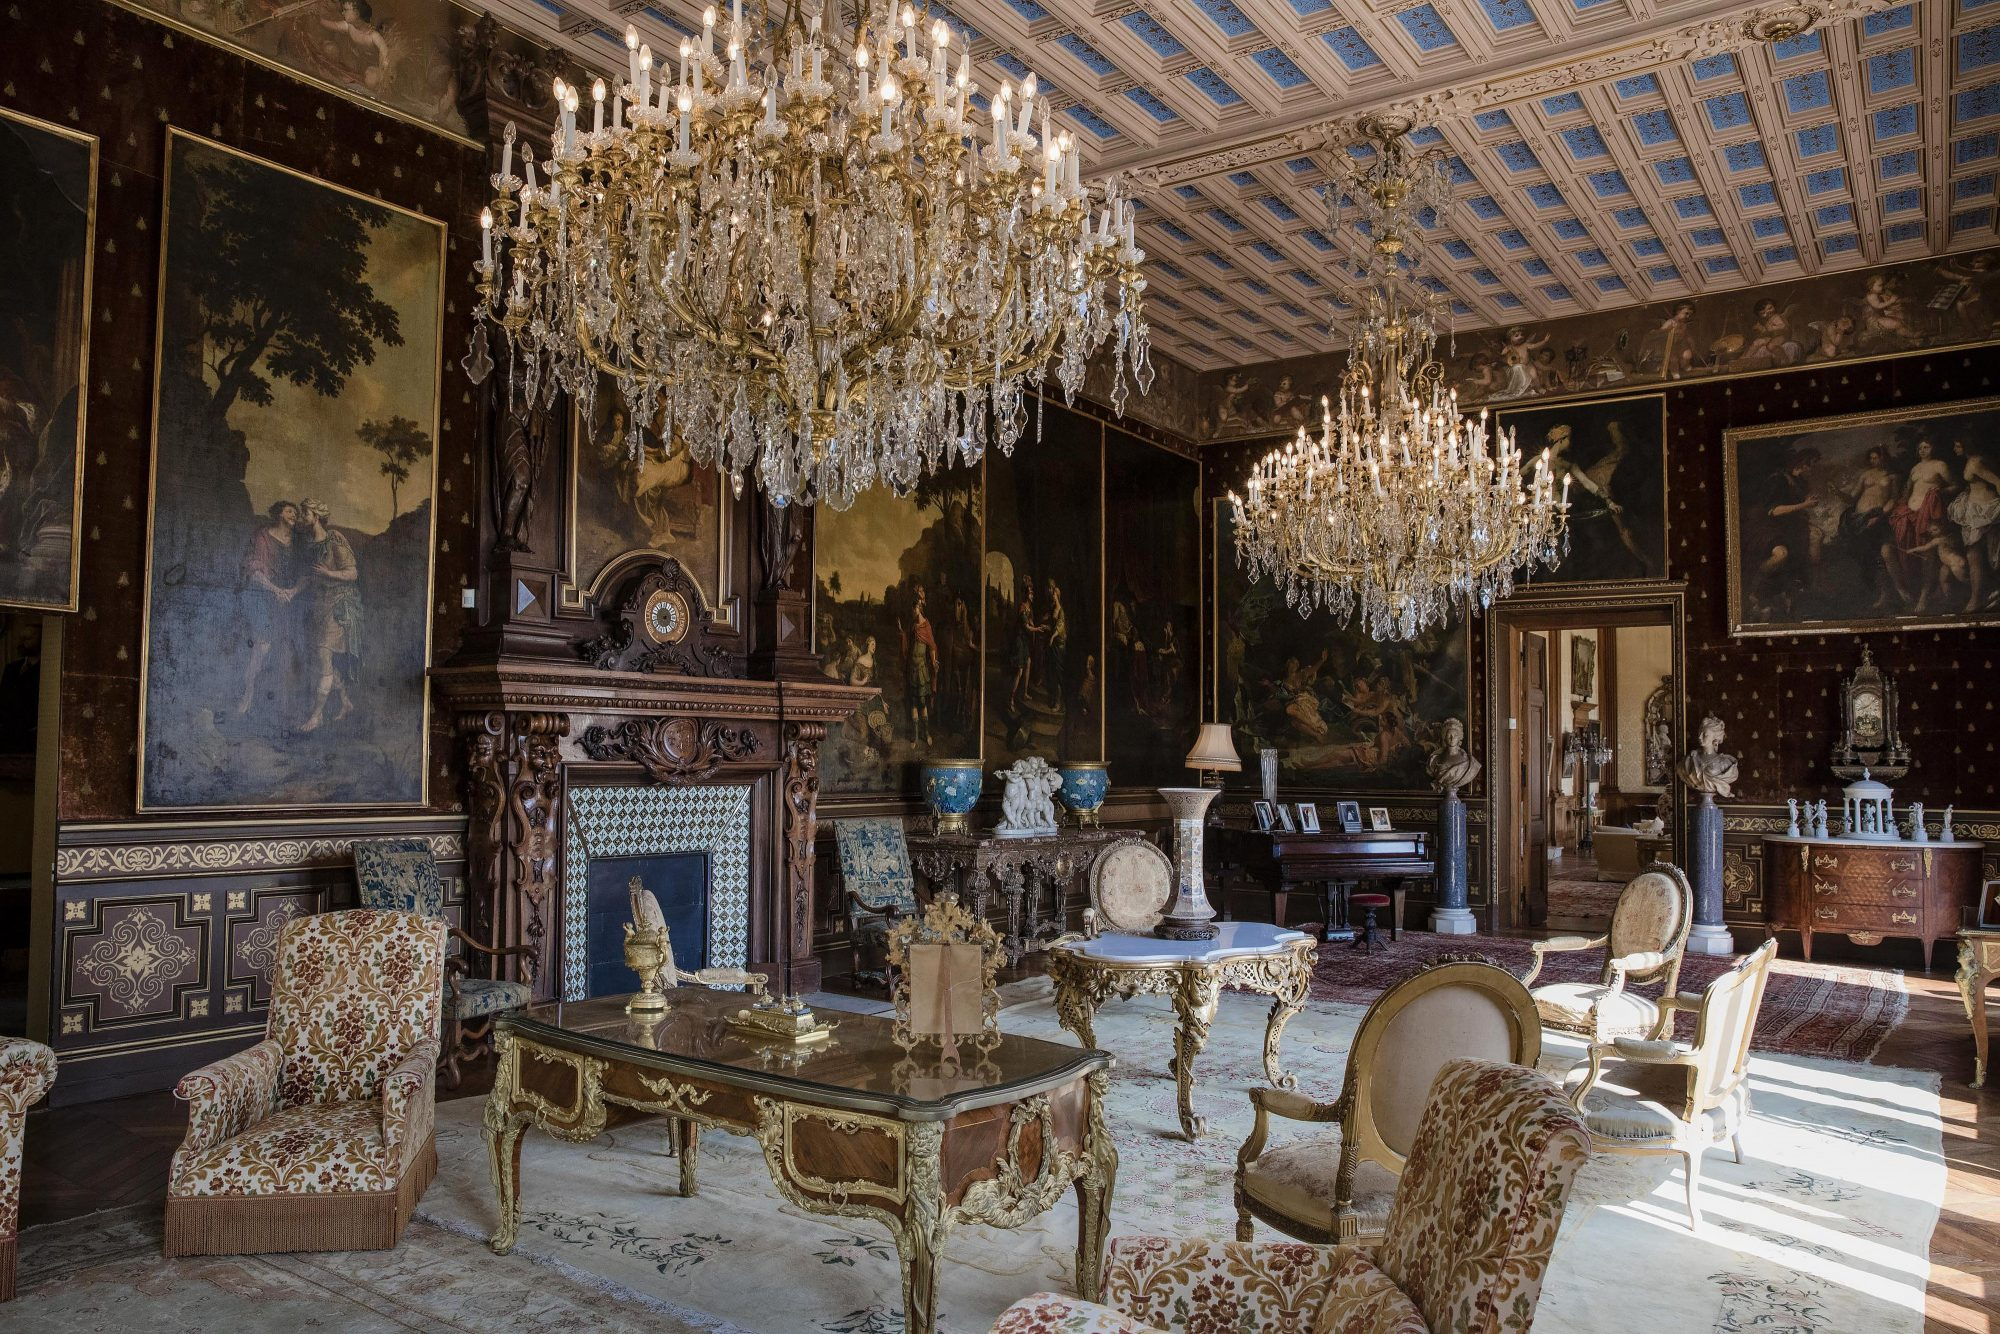 Exclusive: The Most Expensive House On Earth